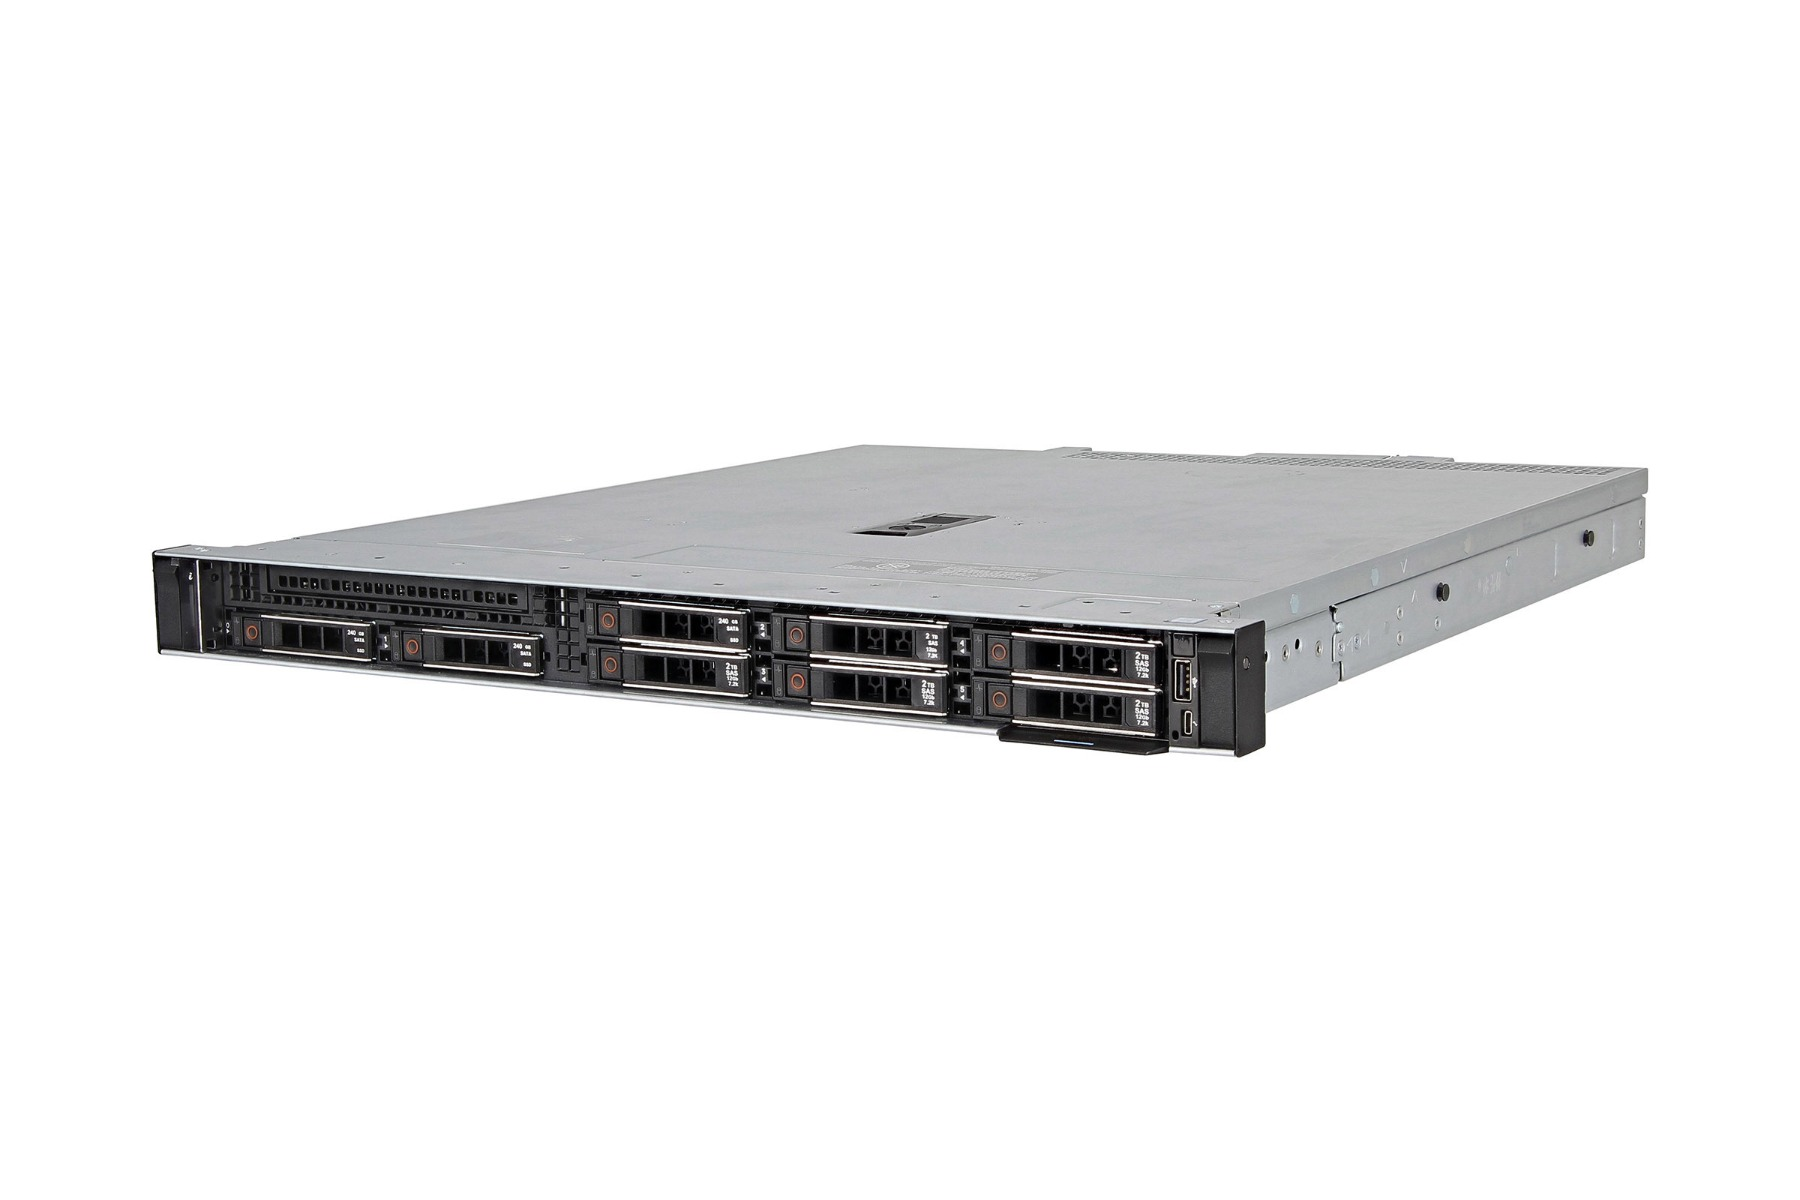 Configure your own Dell PowerEdge R340